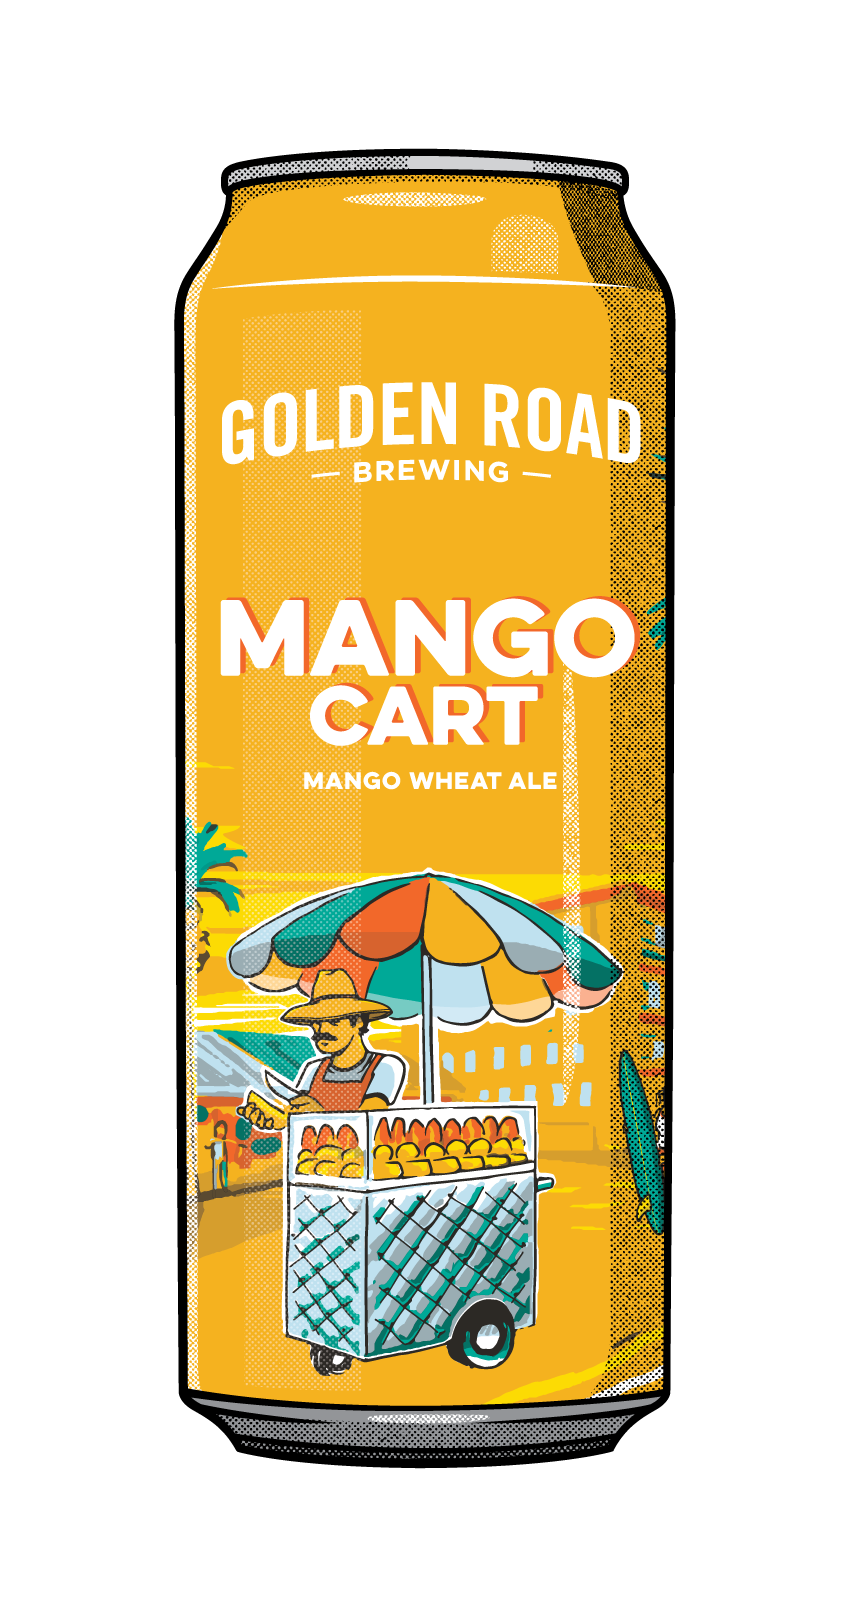 Illustrated Mango Cart 25 Oz Can —  AI,  PNG